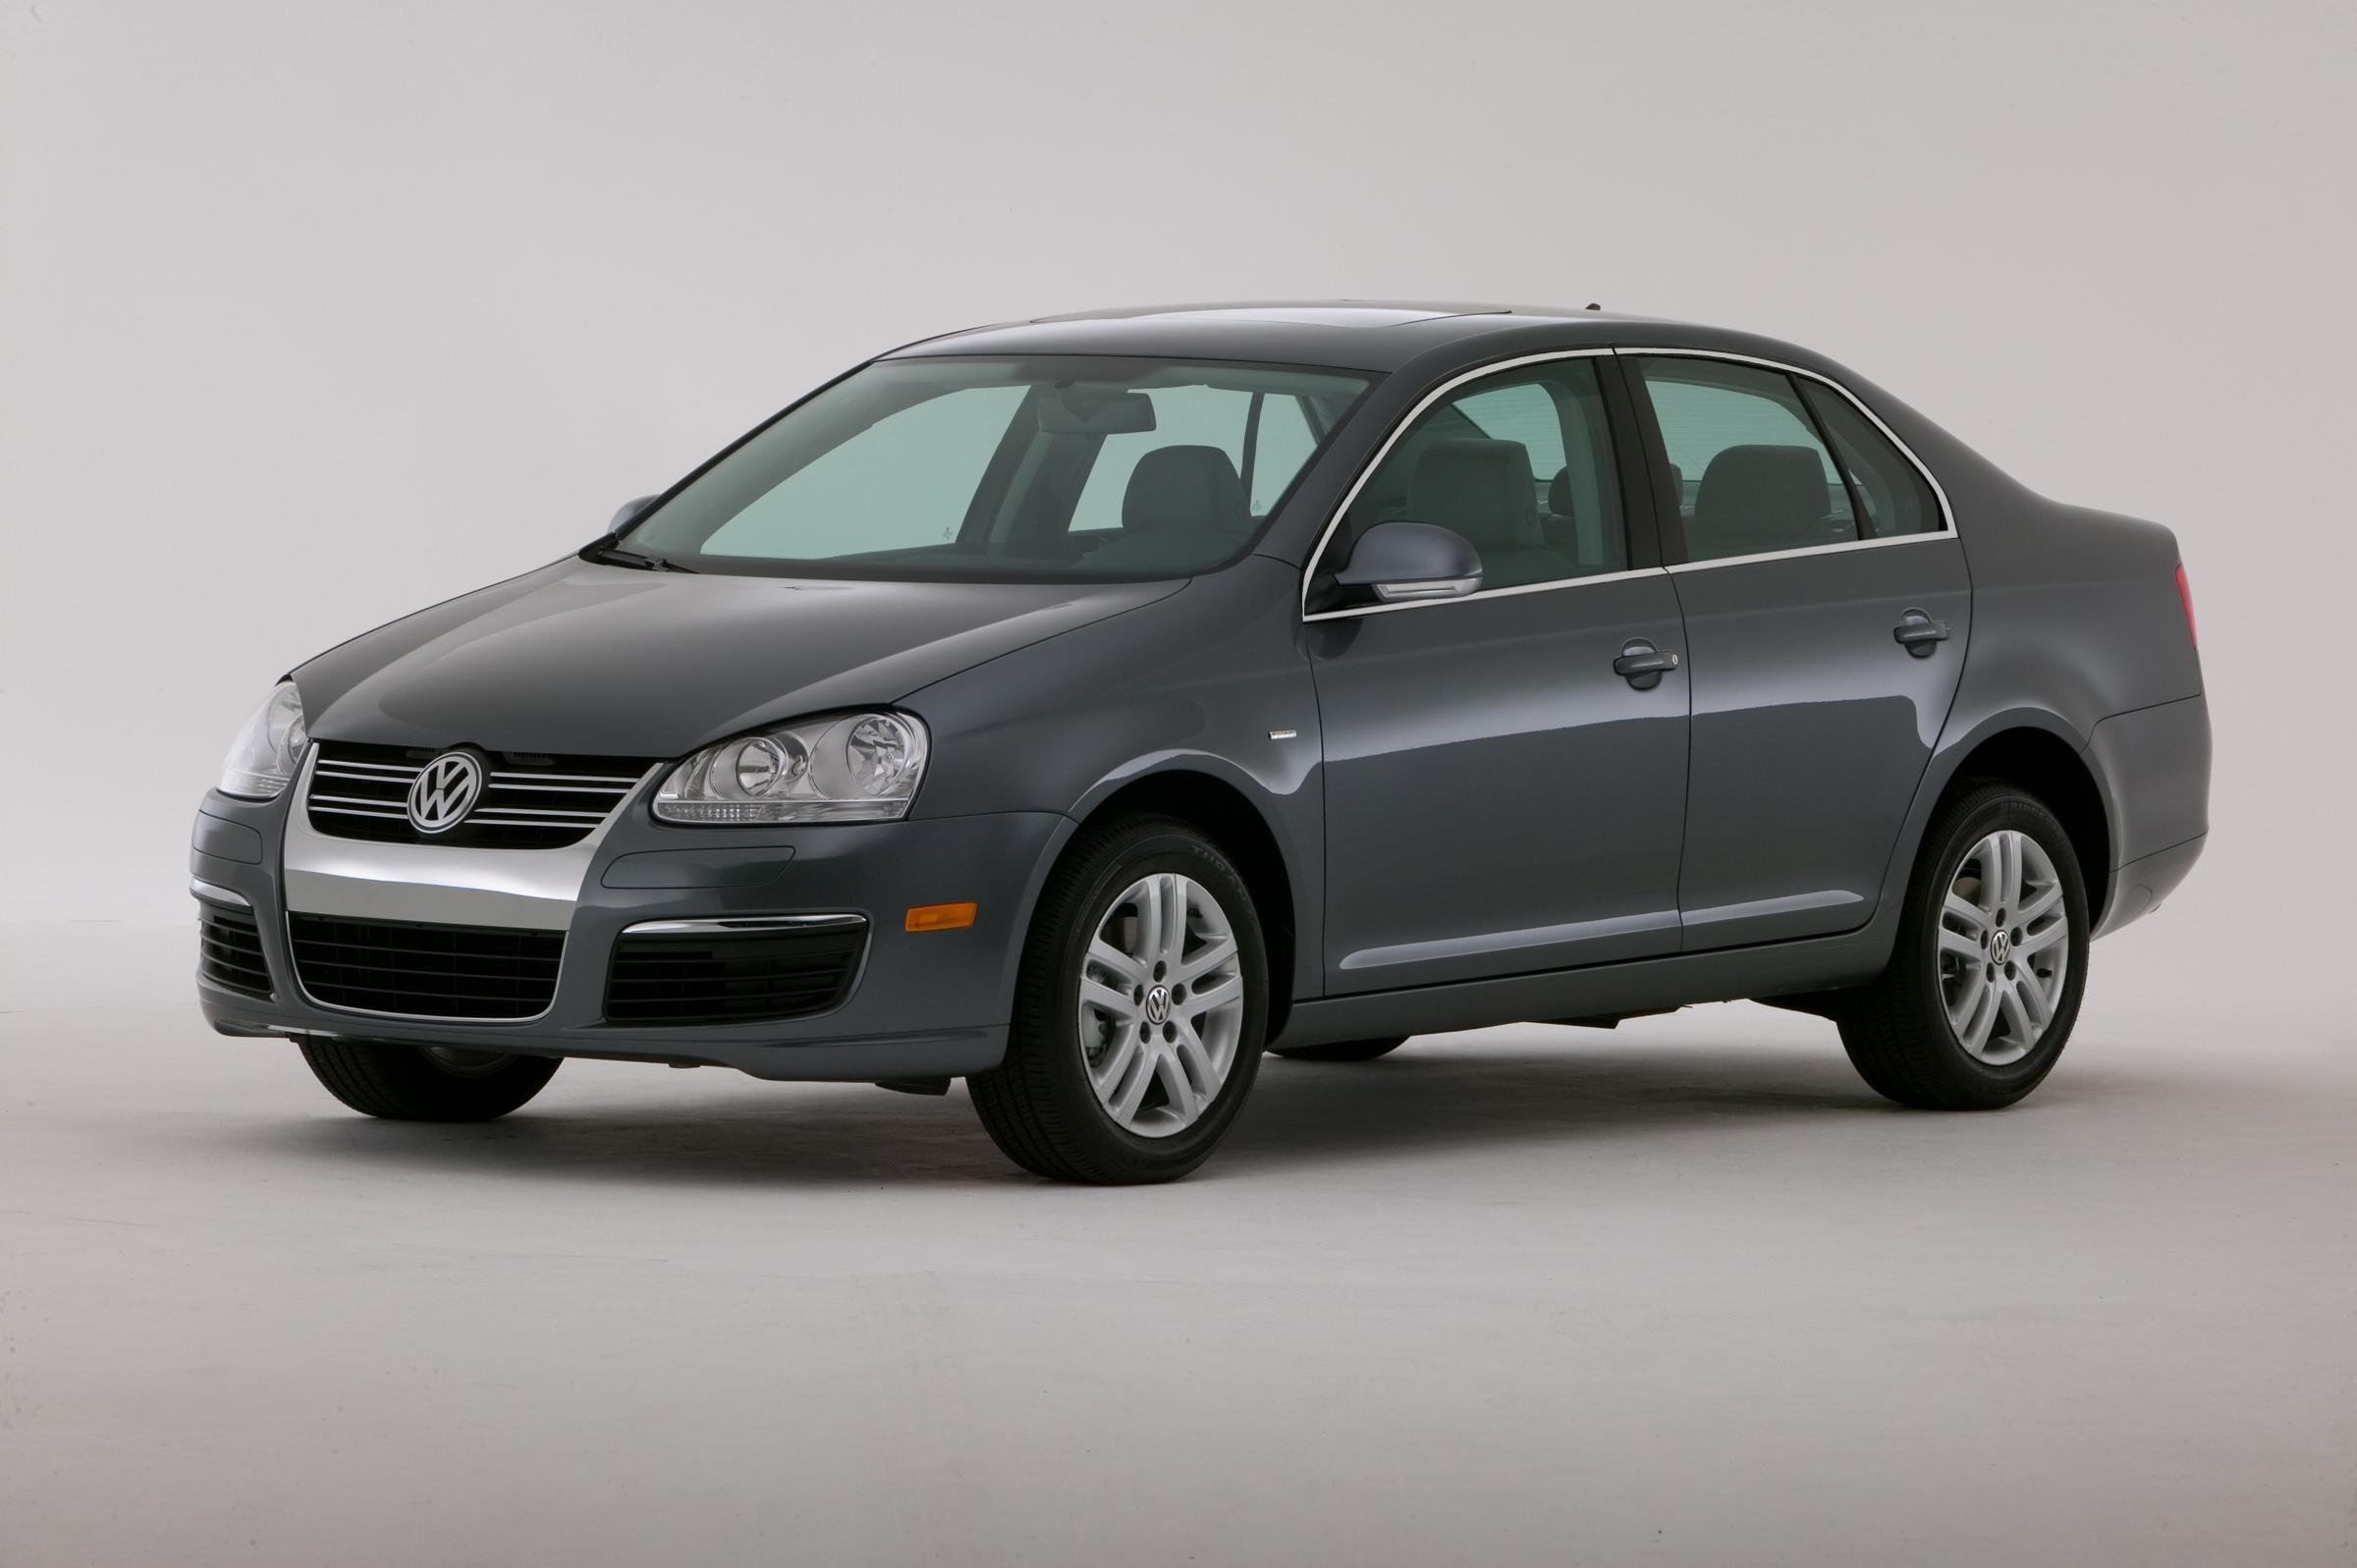 2007 Volkswagen Wolfsburg Edition Jetta | Top Speed